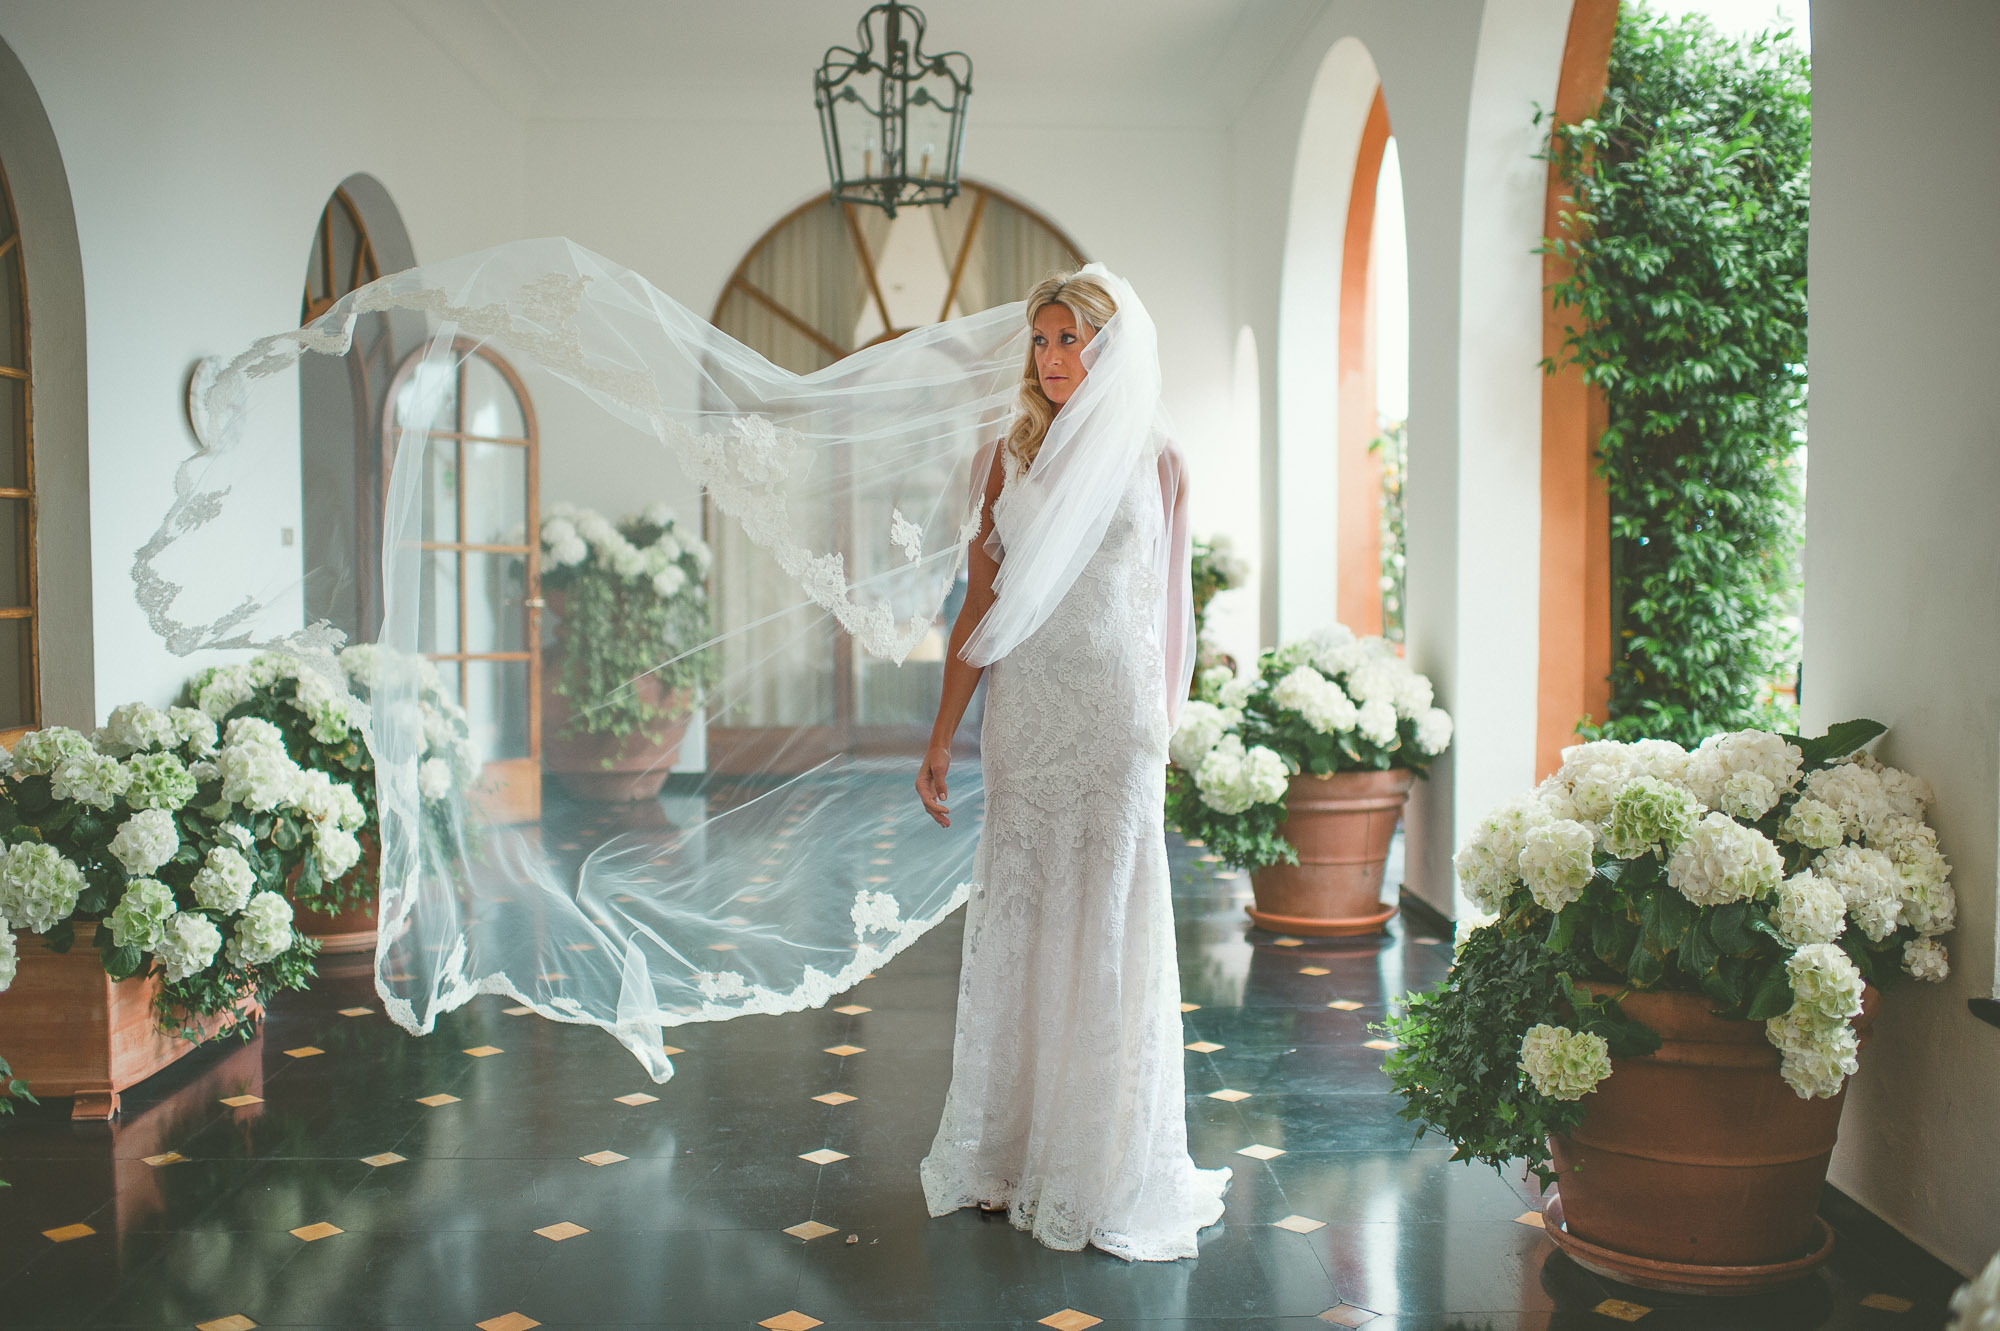 Hotel Splendido wedding photographer in Italy p Portofina, Santa MArgherita Ligure and Zoagli